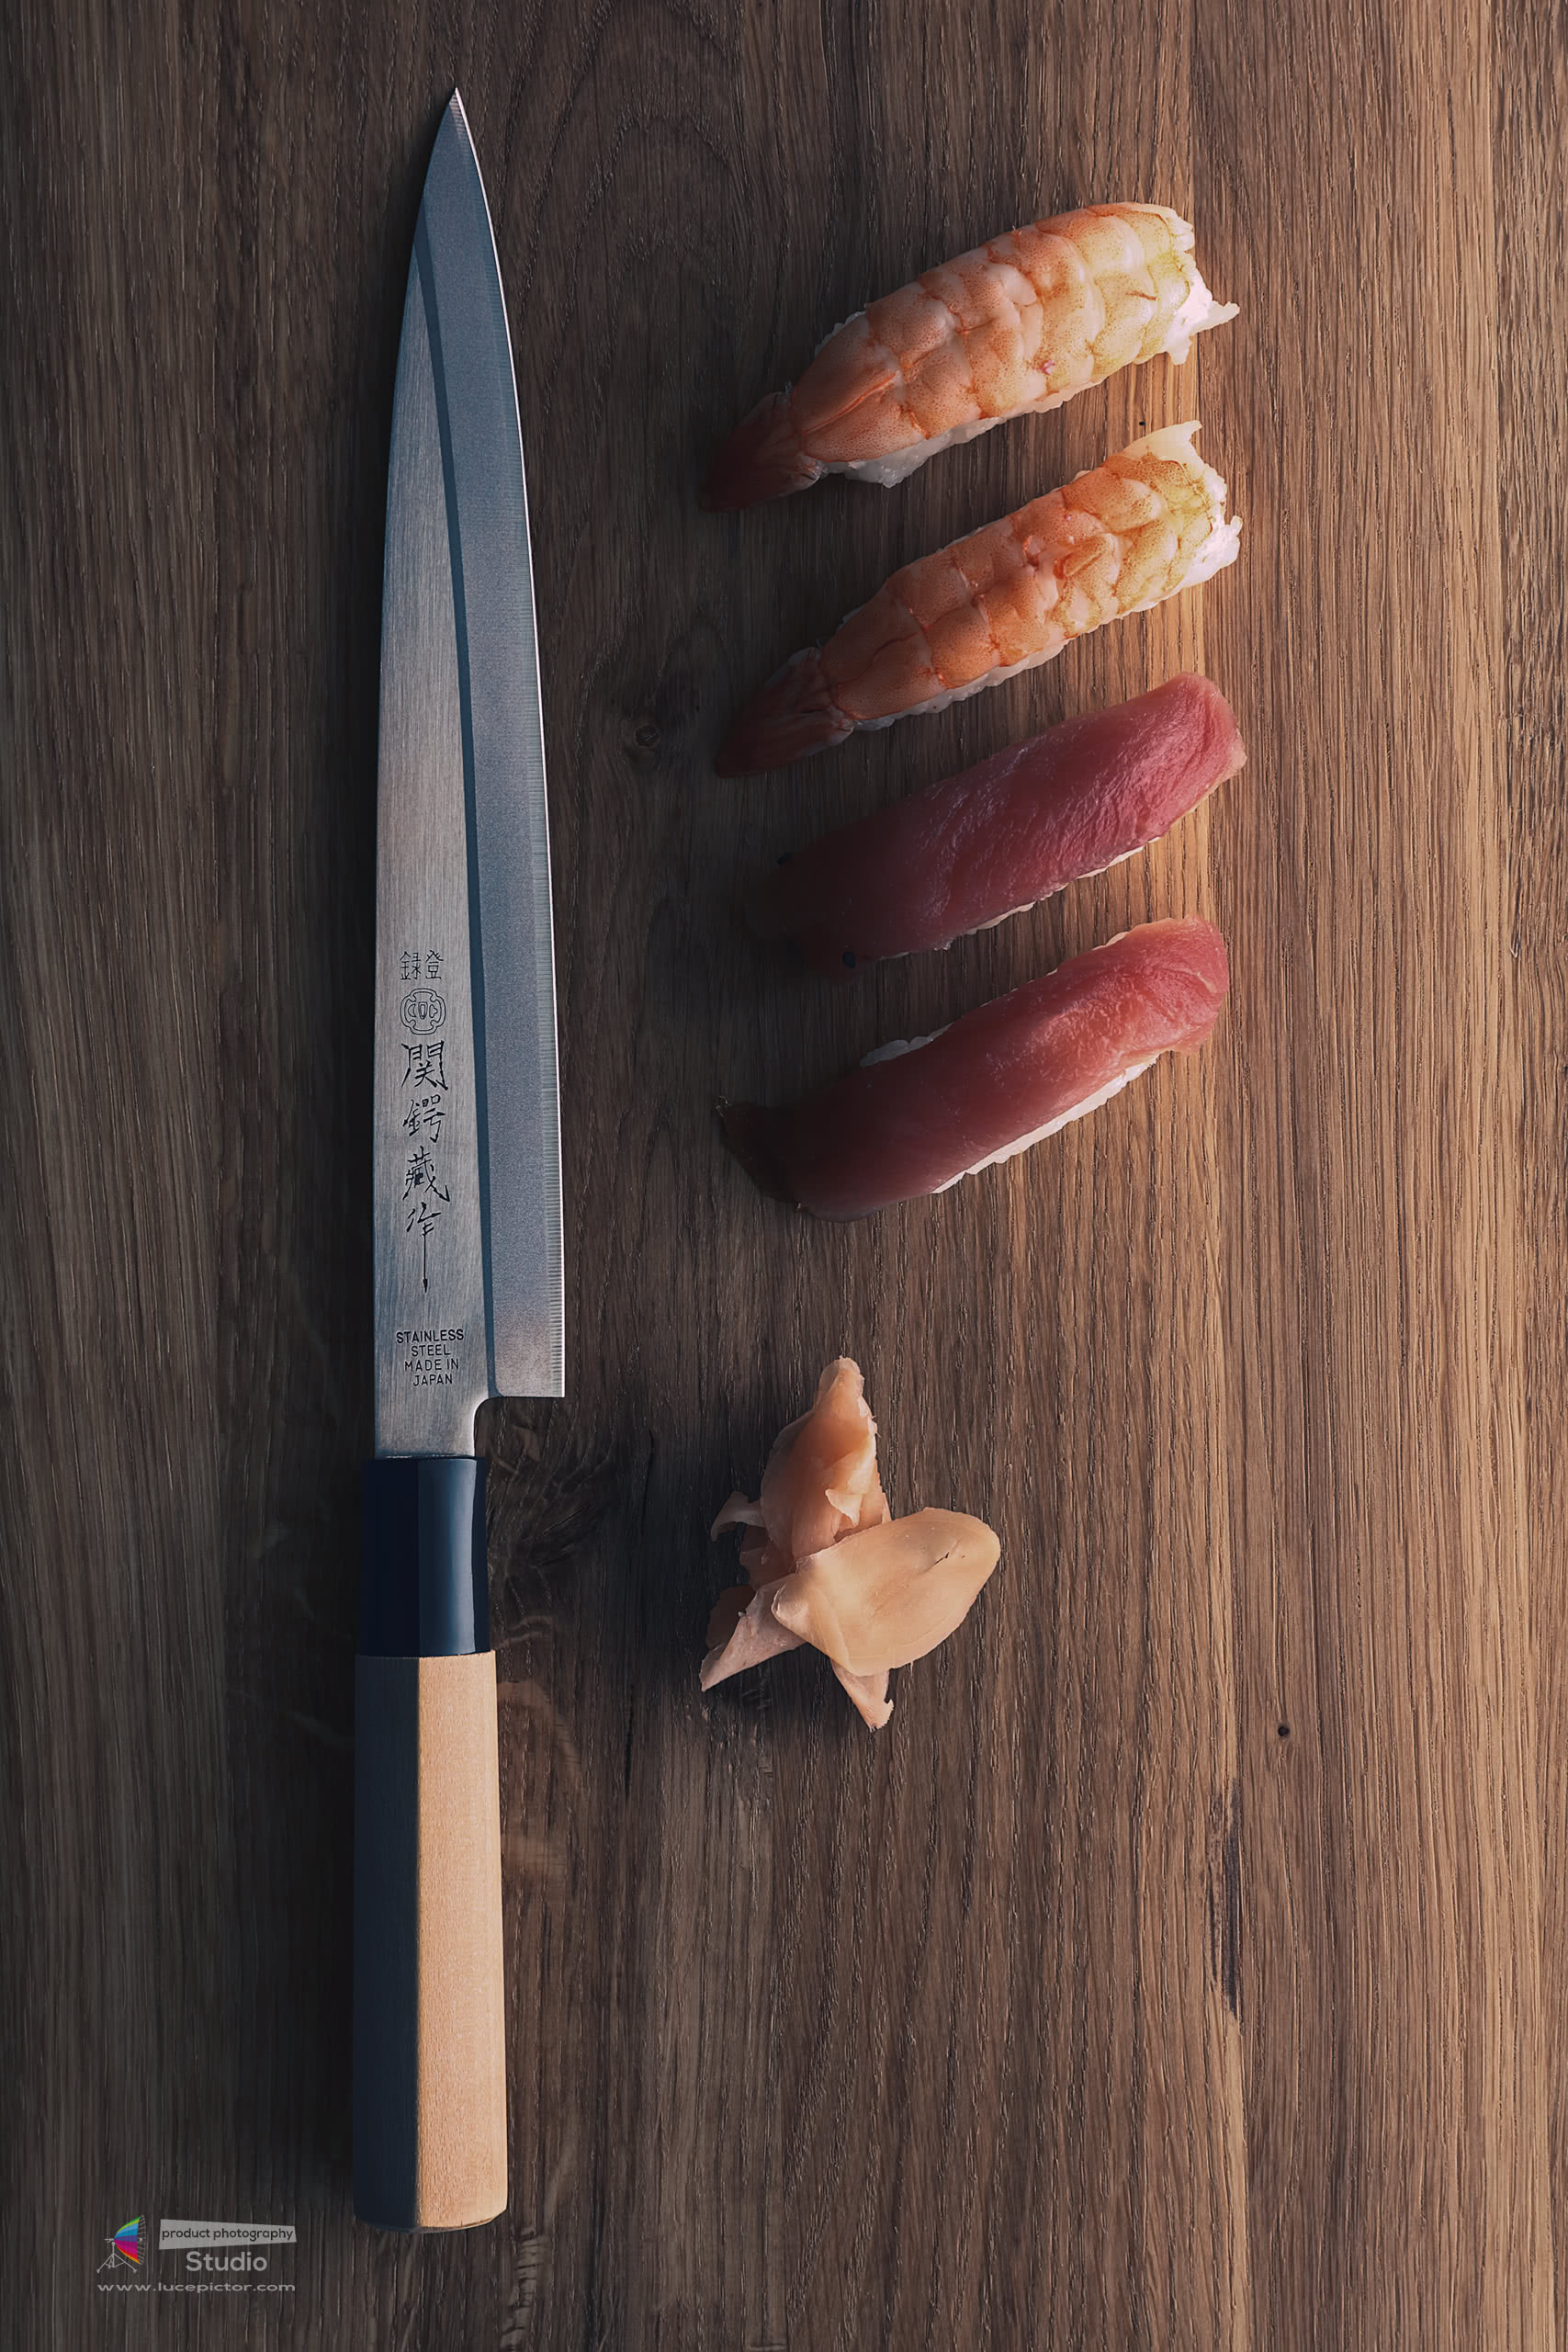 editorial knife product photography